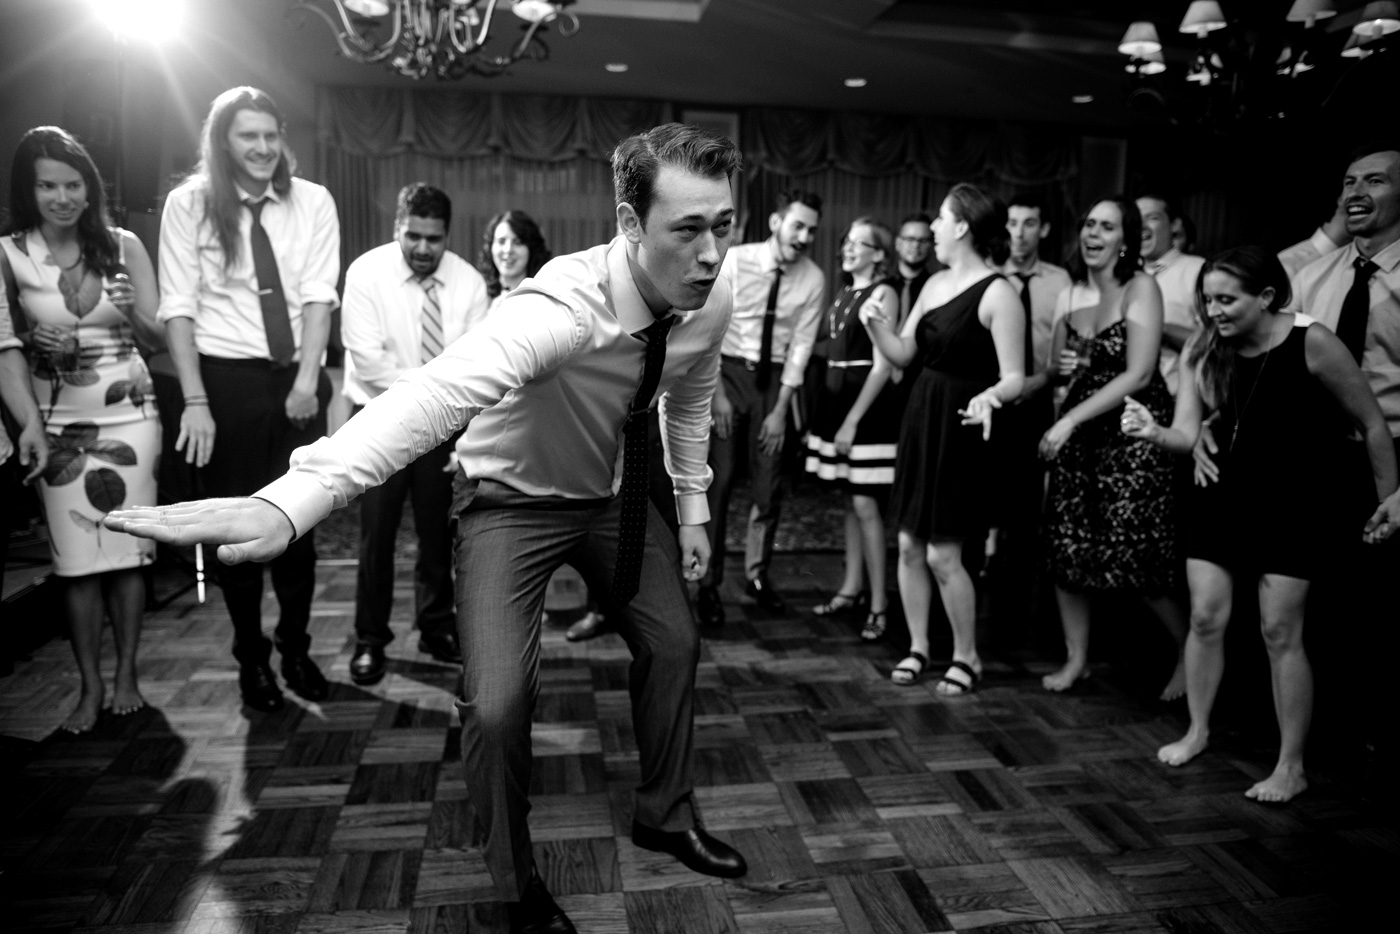 st clair country club wedding reception dancing hotline bling